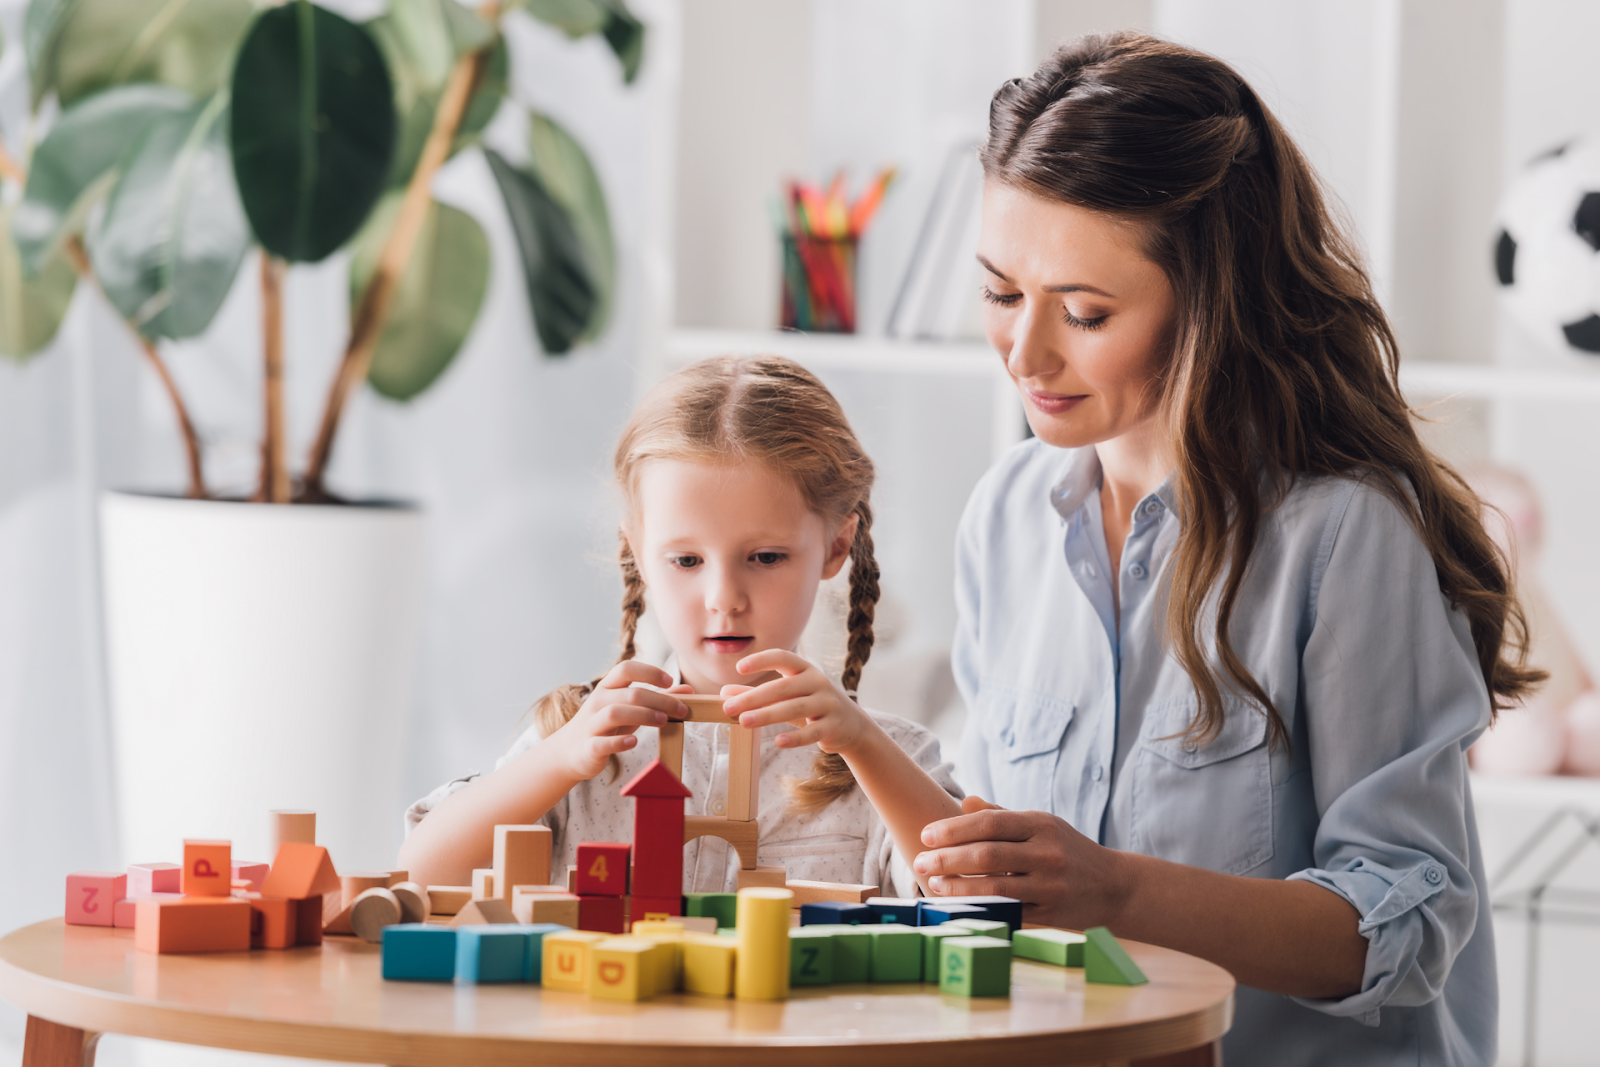 child playing with blocks next to mother